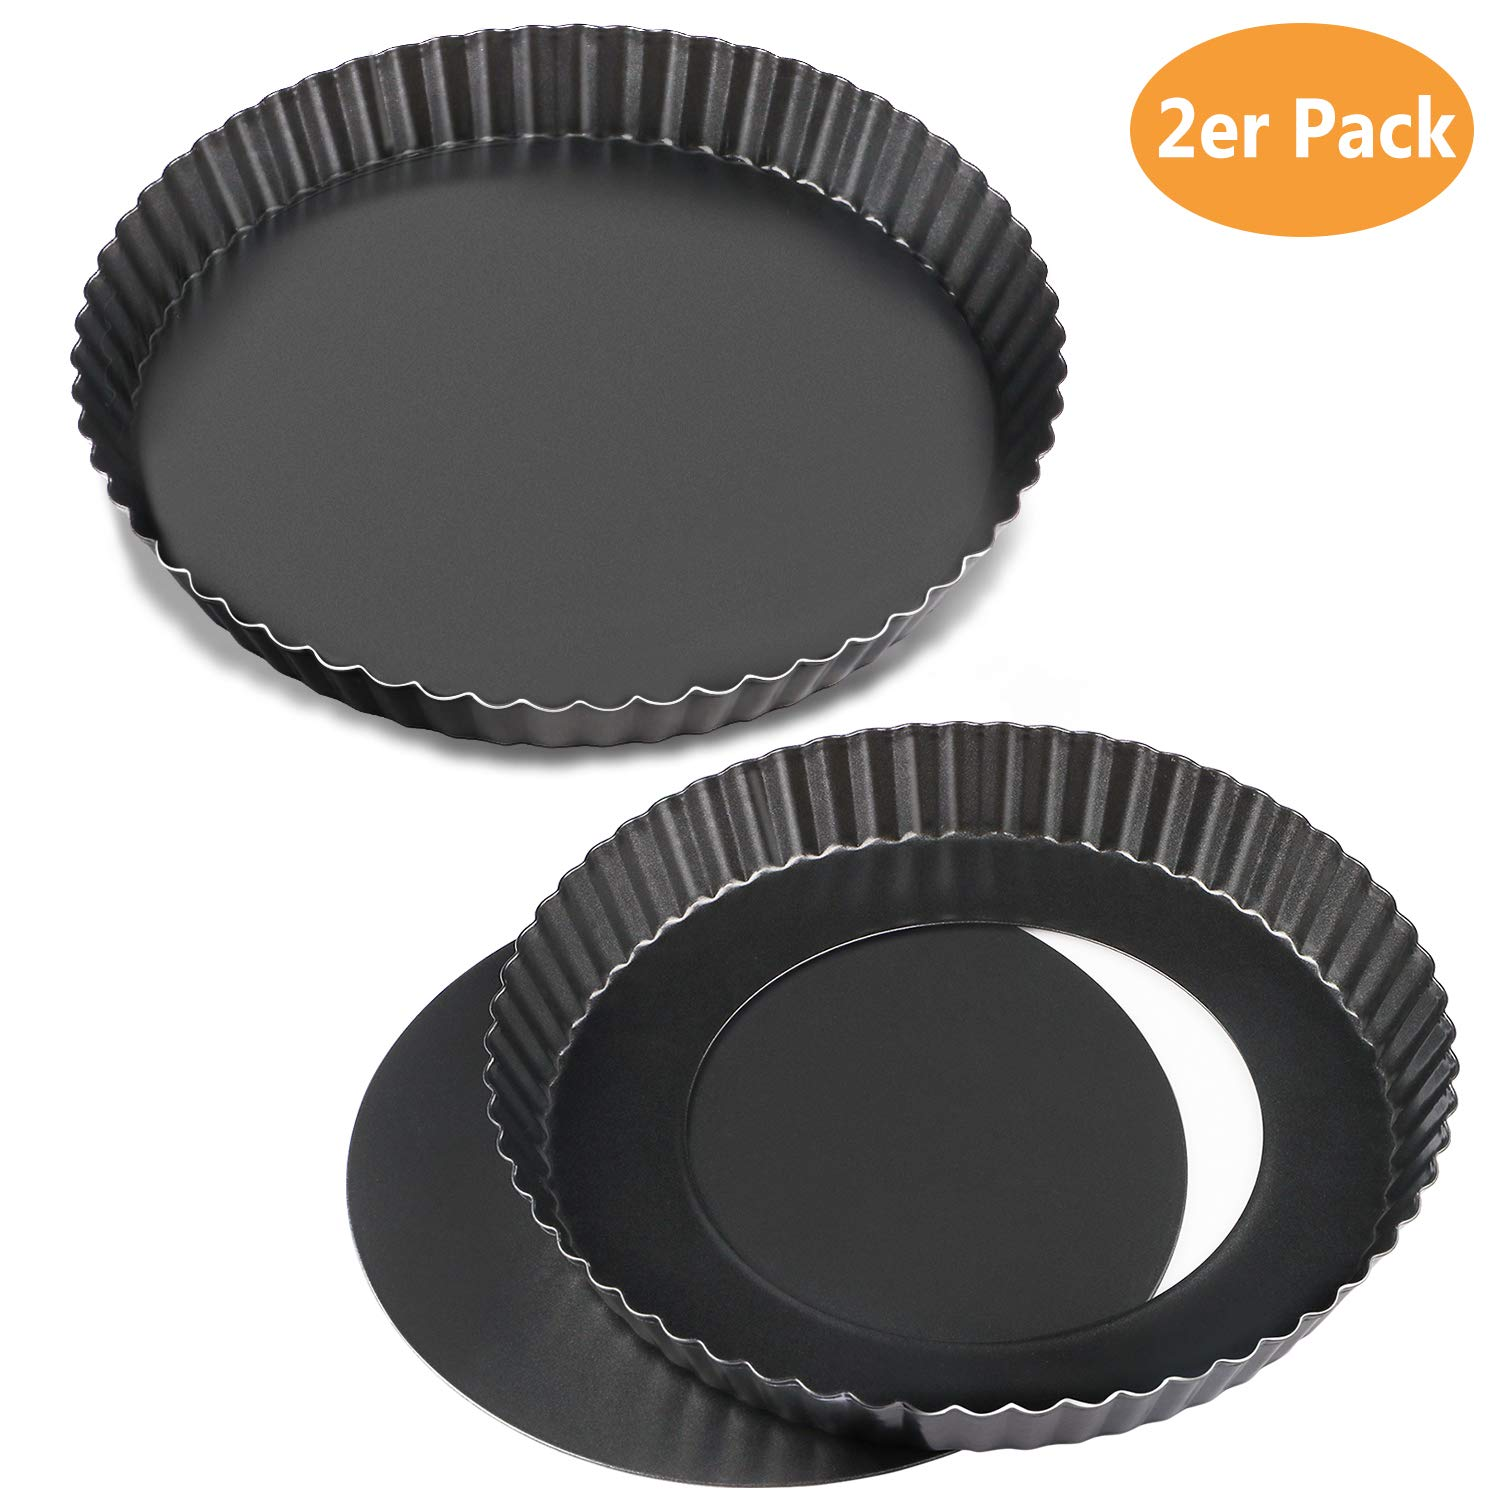 WisFox 2 Pack antiadherentes 8.8 pulgadas Quiche Tart Pan, extraíble Loose Bottom Tart Pie,